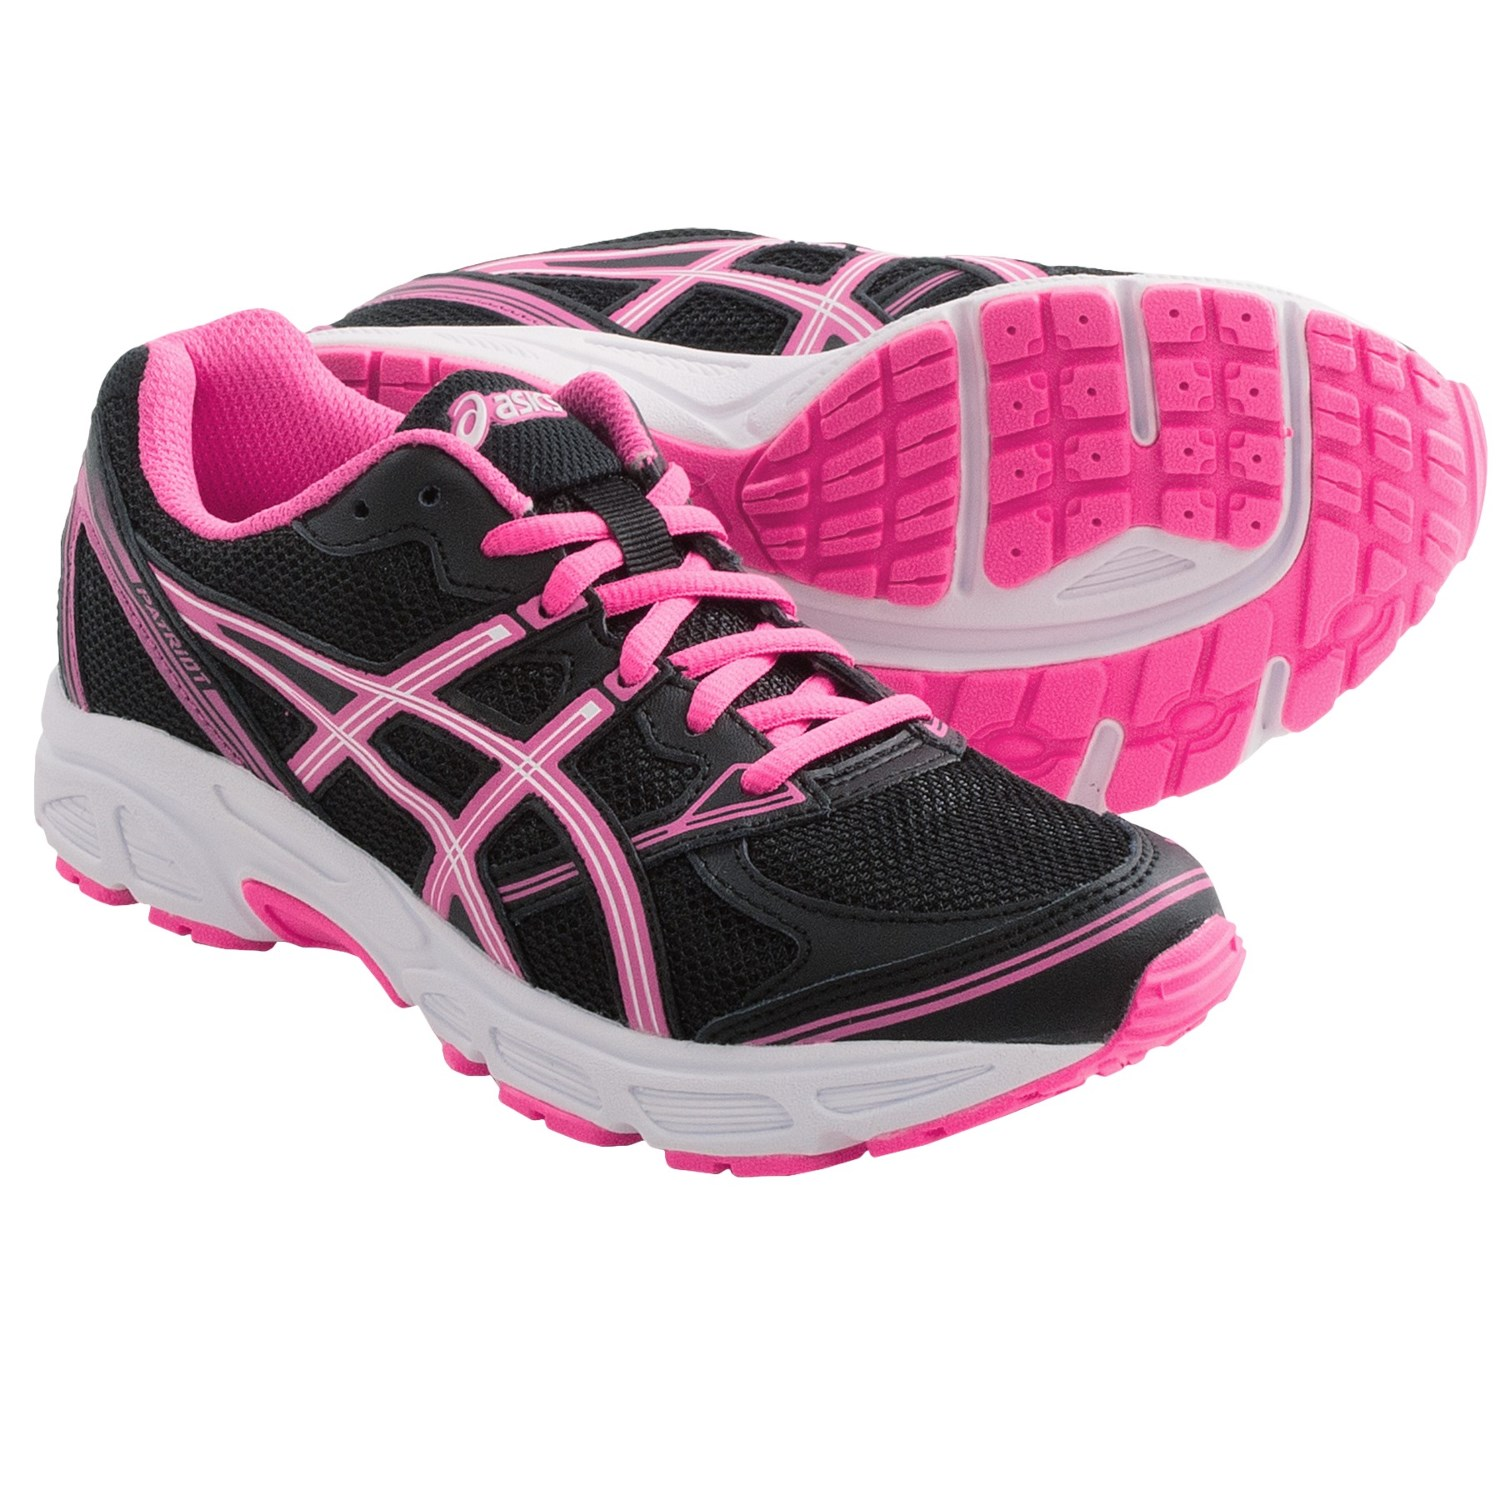 asics-patriot-6-gs-running-shoes-for-girls-in-black-hot-pink-white~p